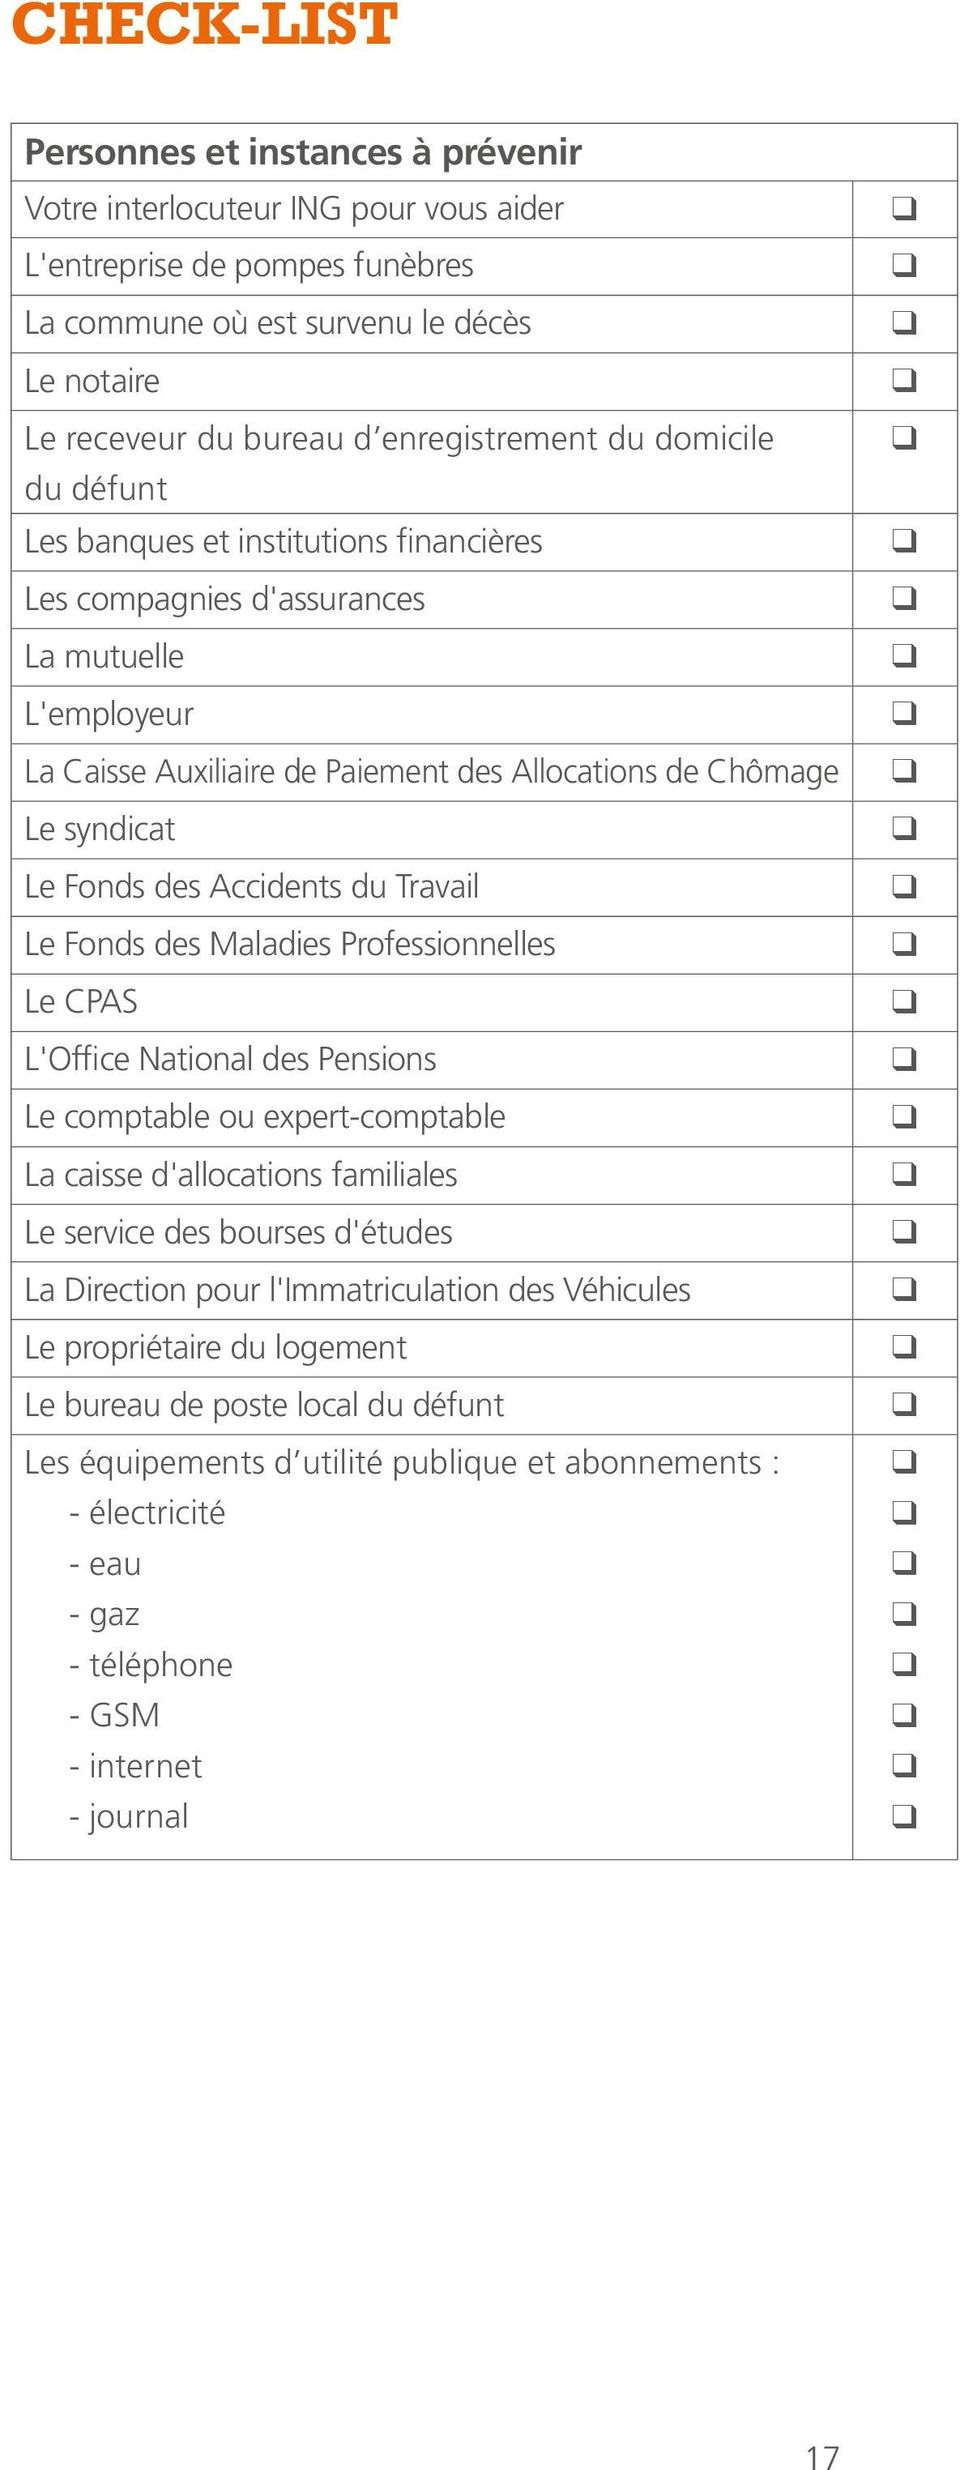 syndicat Le Fonds des Accidents du Travail Le Fonds des Maladies Professionnelles Le CPAS L'Office National des Pensions Le comptable ou expert-comptable La caisse d'allocations familiales Le service